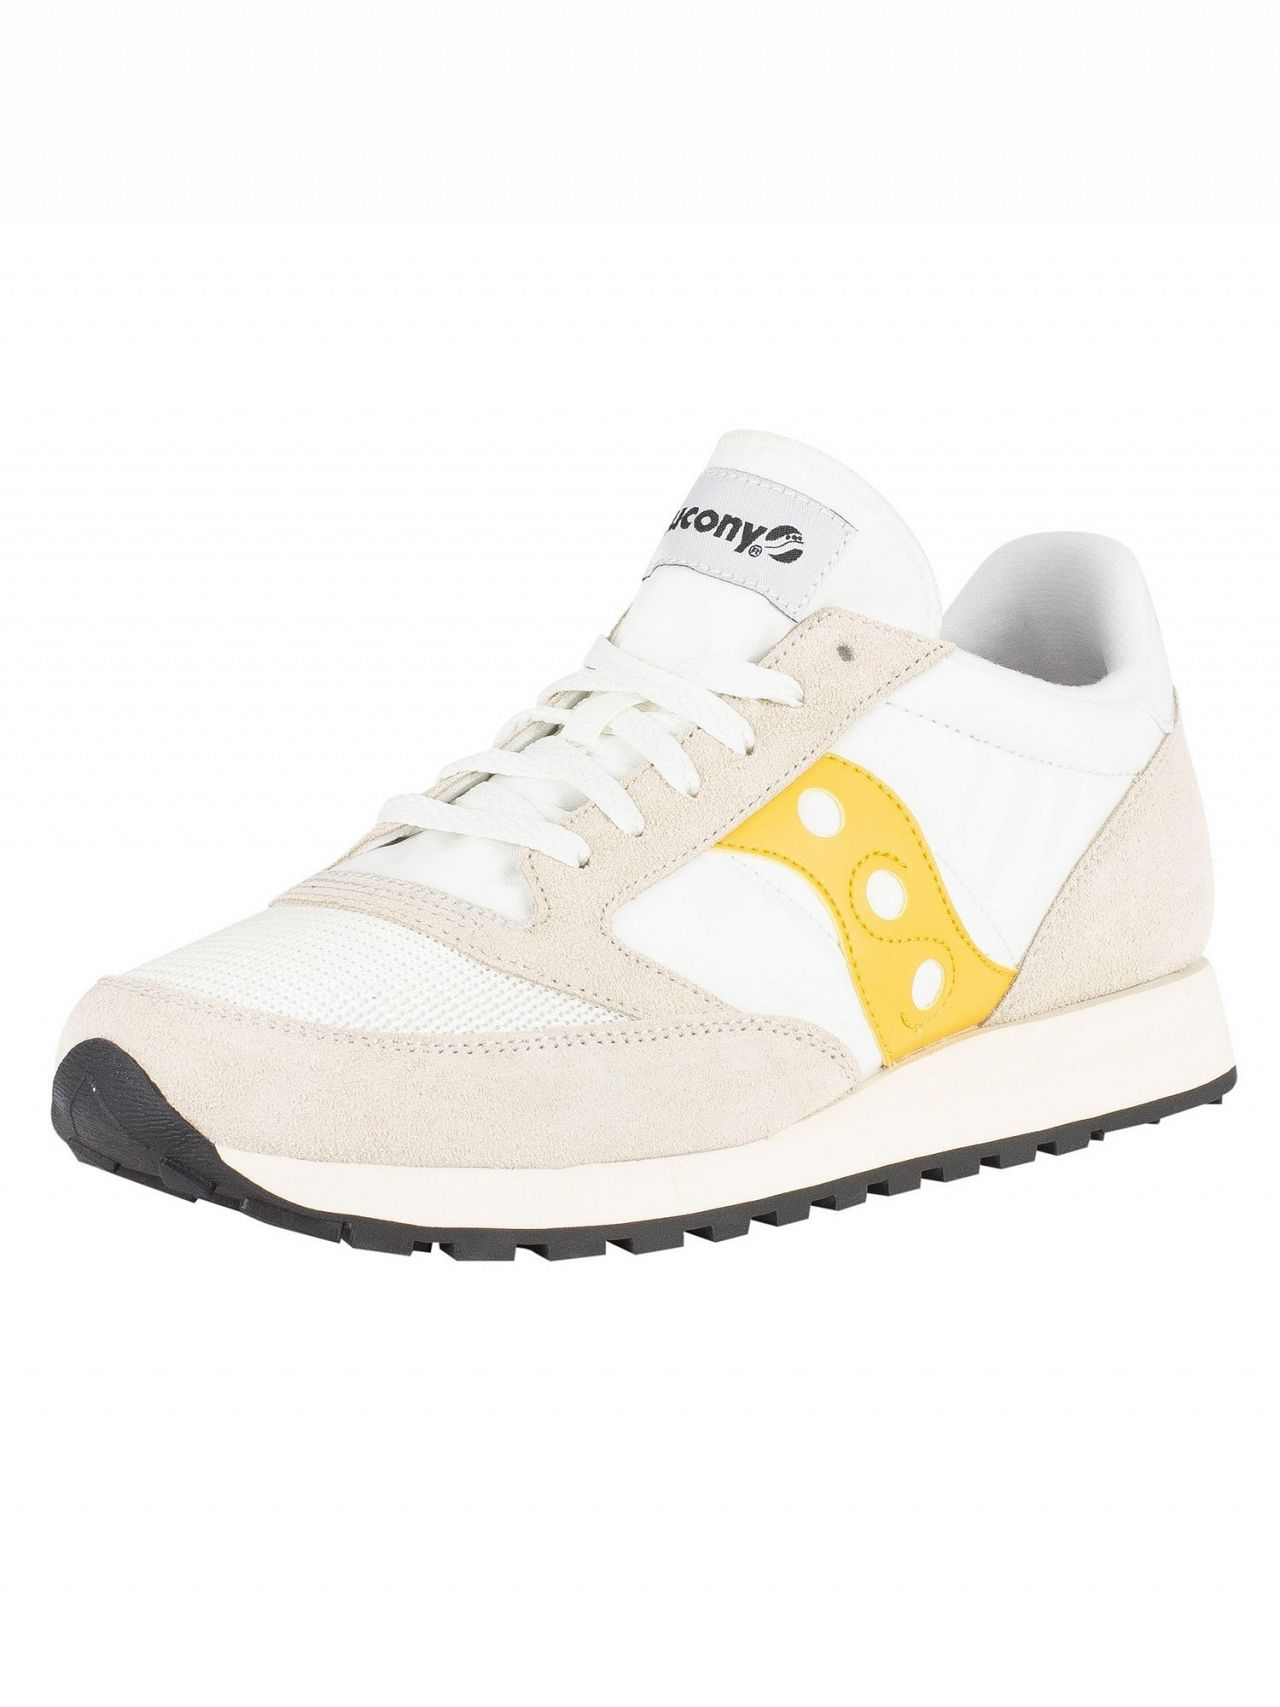 5be9a6c072db Saucony Cement Yellow Jazz Original Vintage Trainers